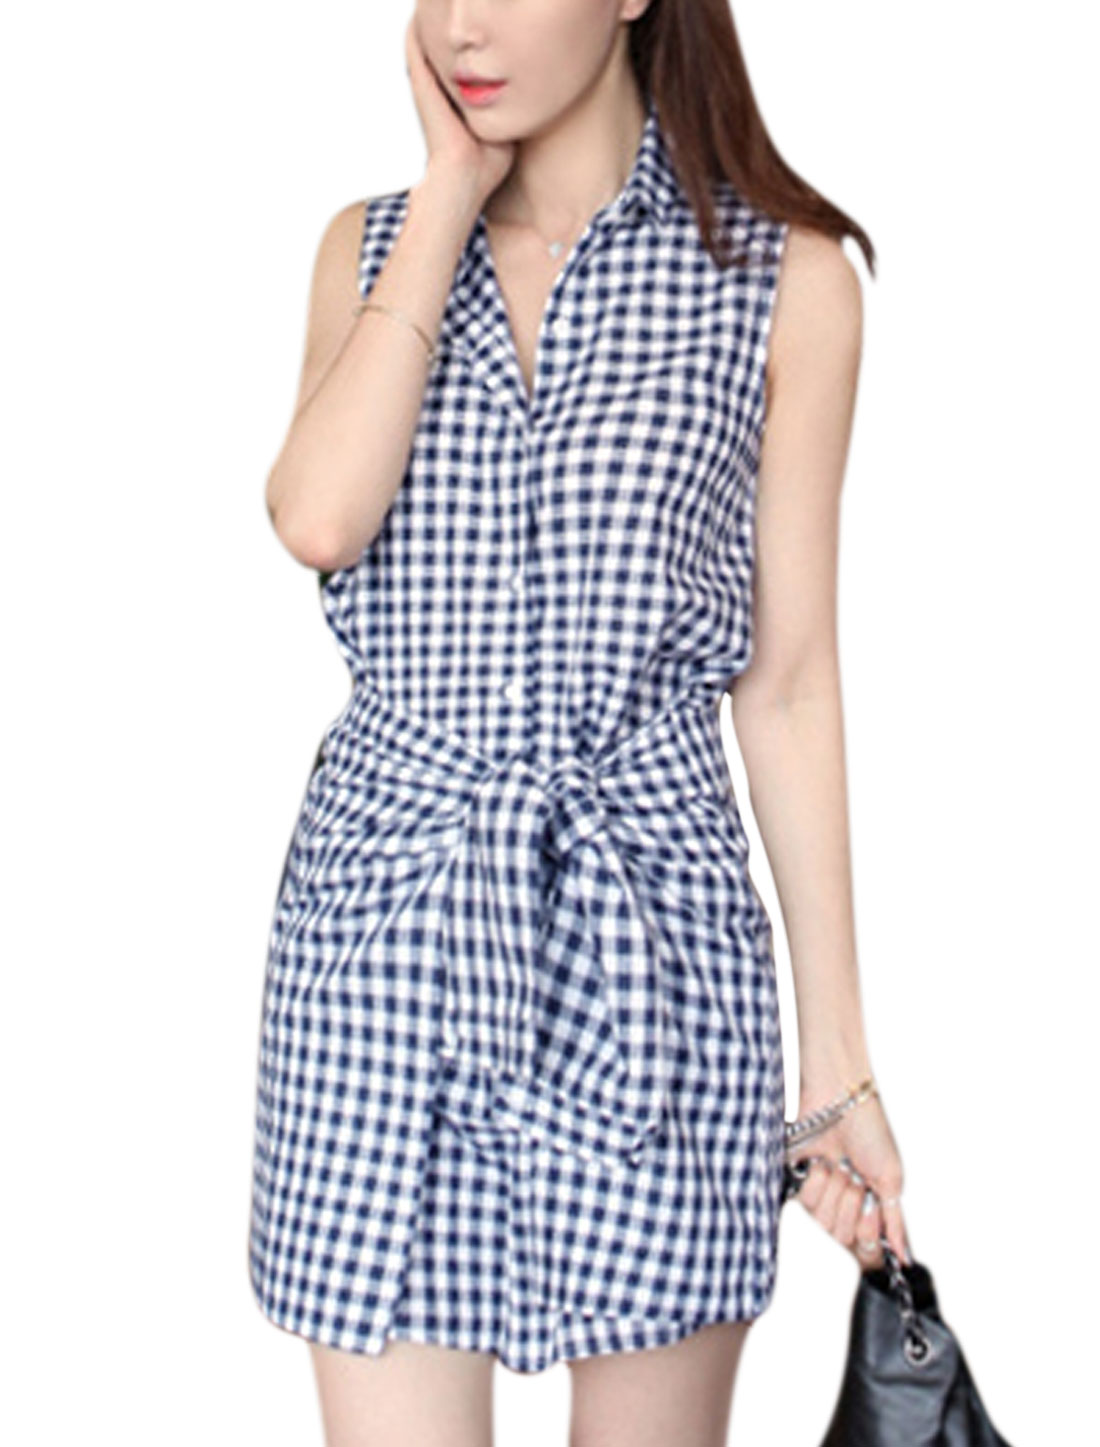 Lady Single Breasted Self Tie Strap Waist Plaids Shirt Dress Blue White S